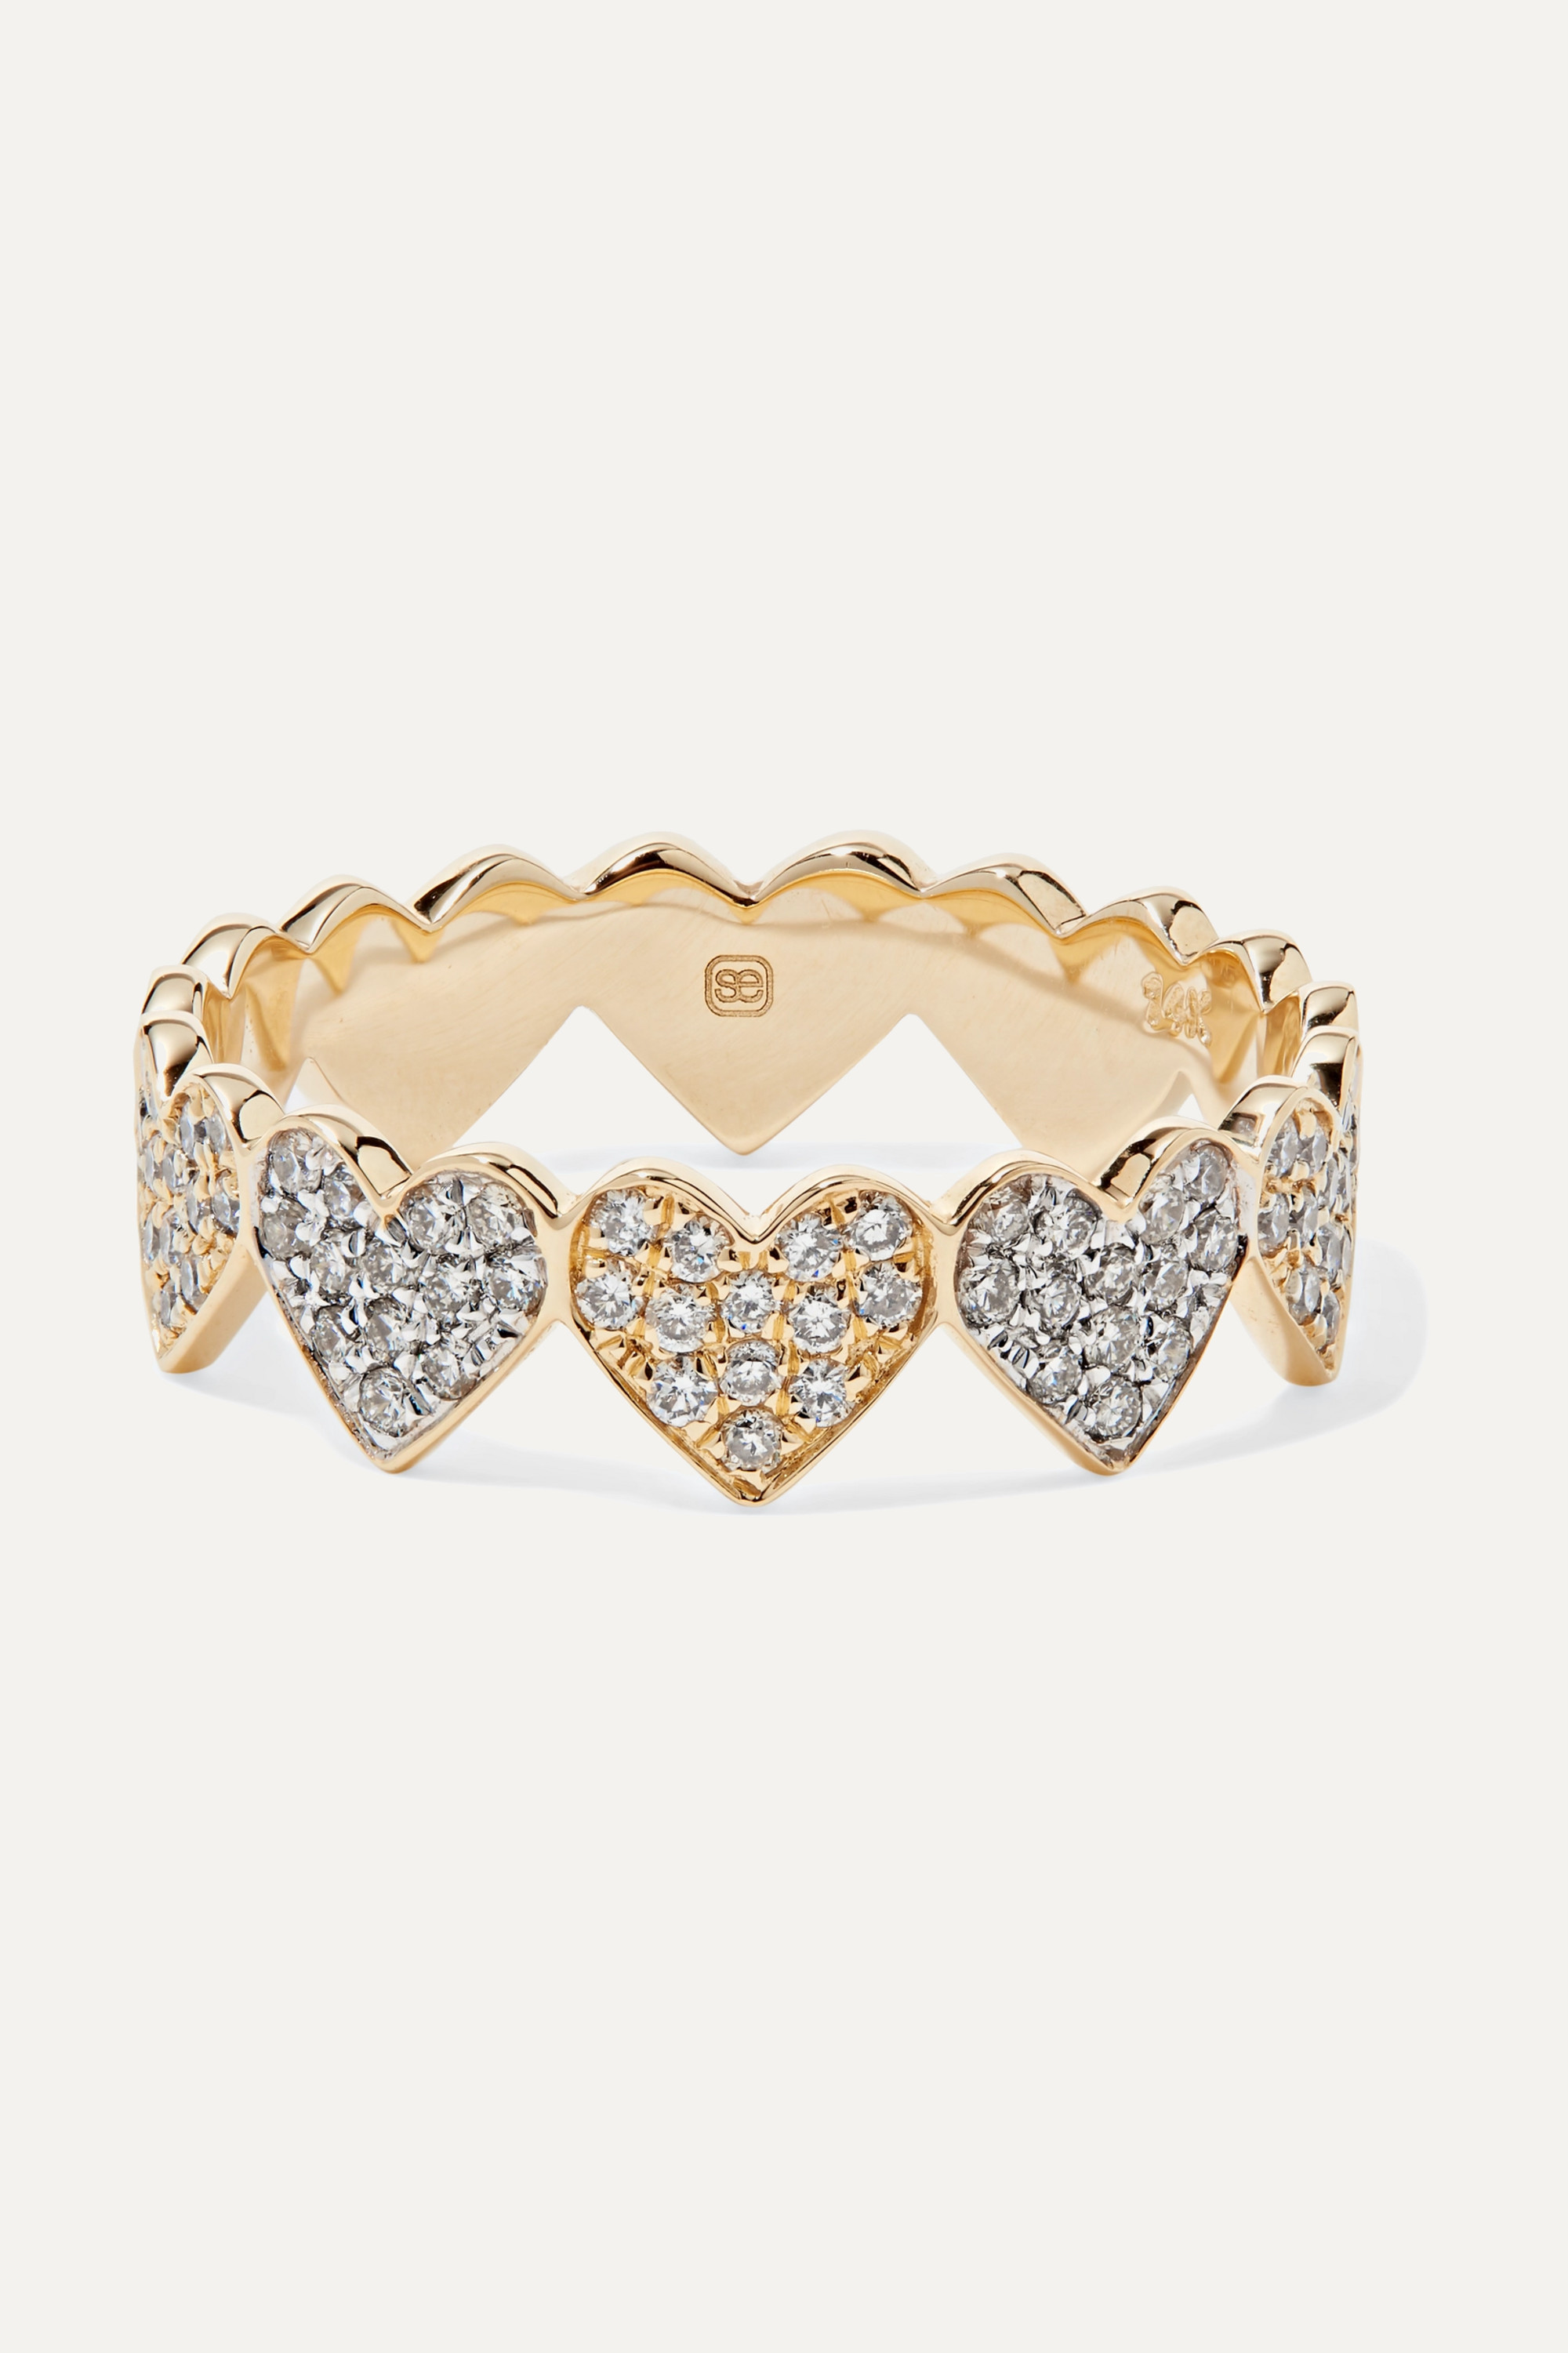 Sydney Evan Eternity Heart 14-karat yellow and white gold diamond ring